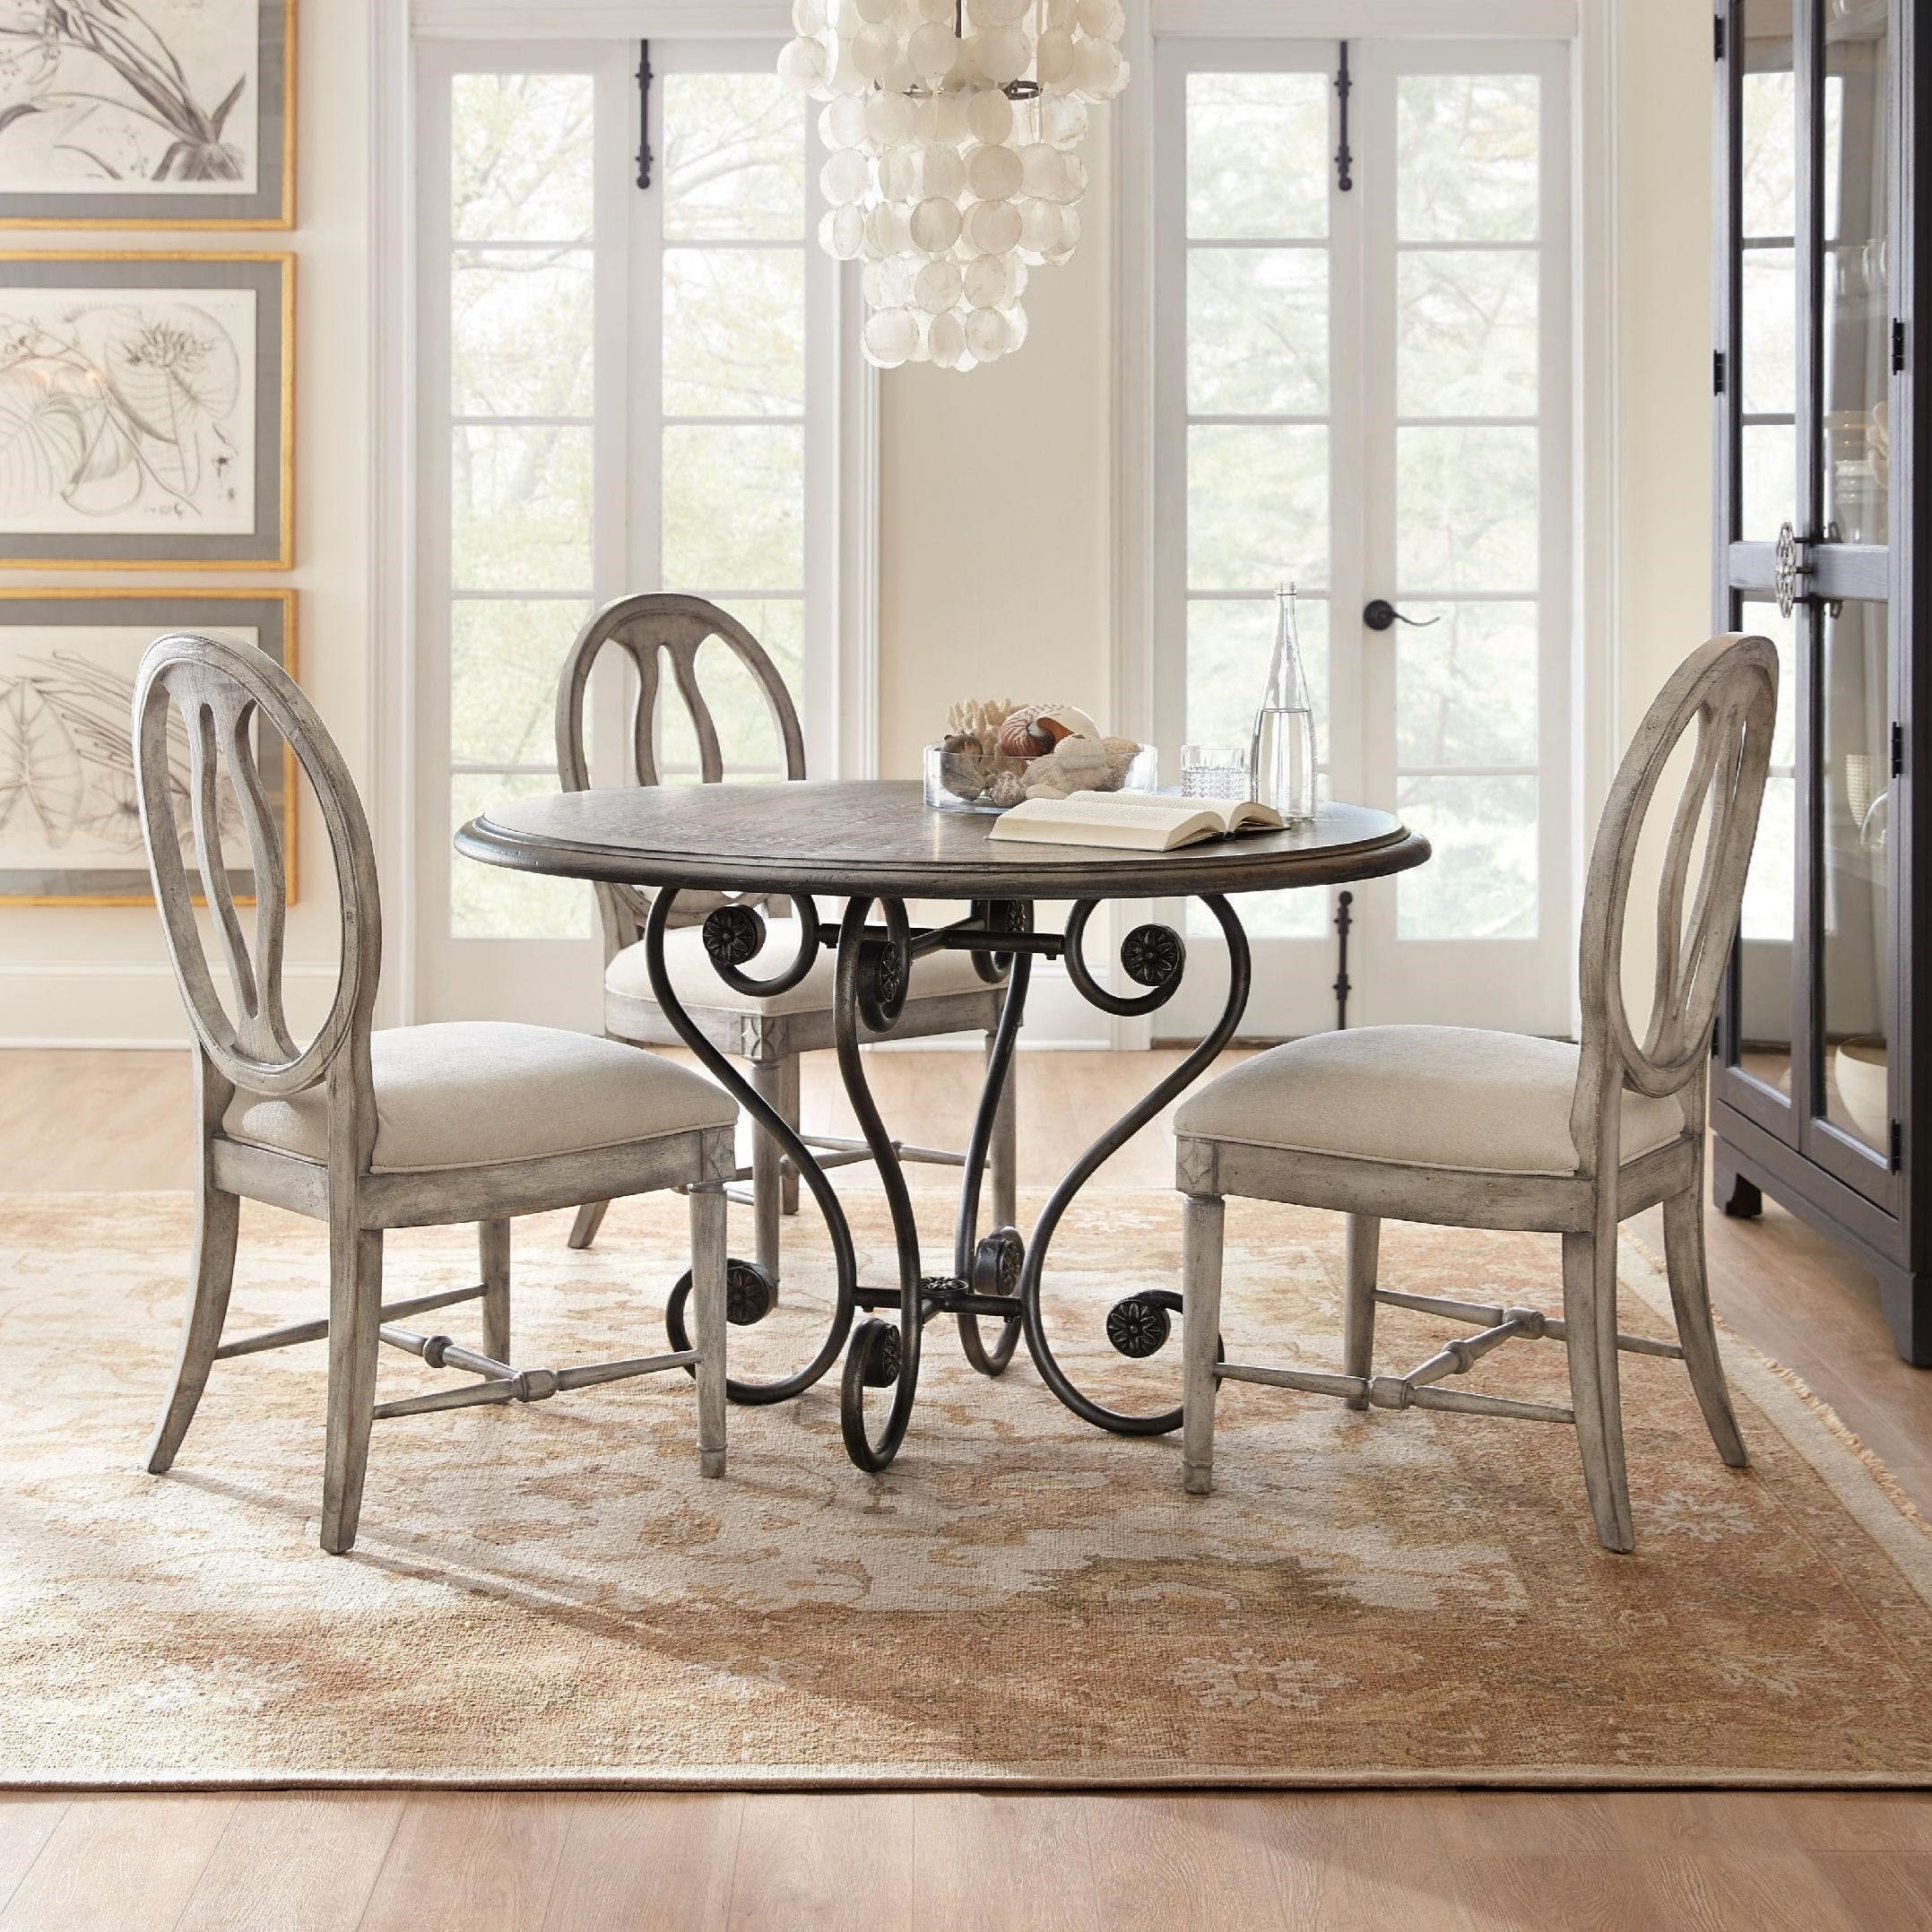 Sanctuary 5 Piece Table and Chair Set by Hooker Furniture at Furniture Barn